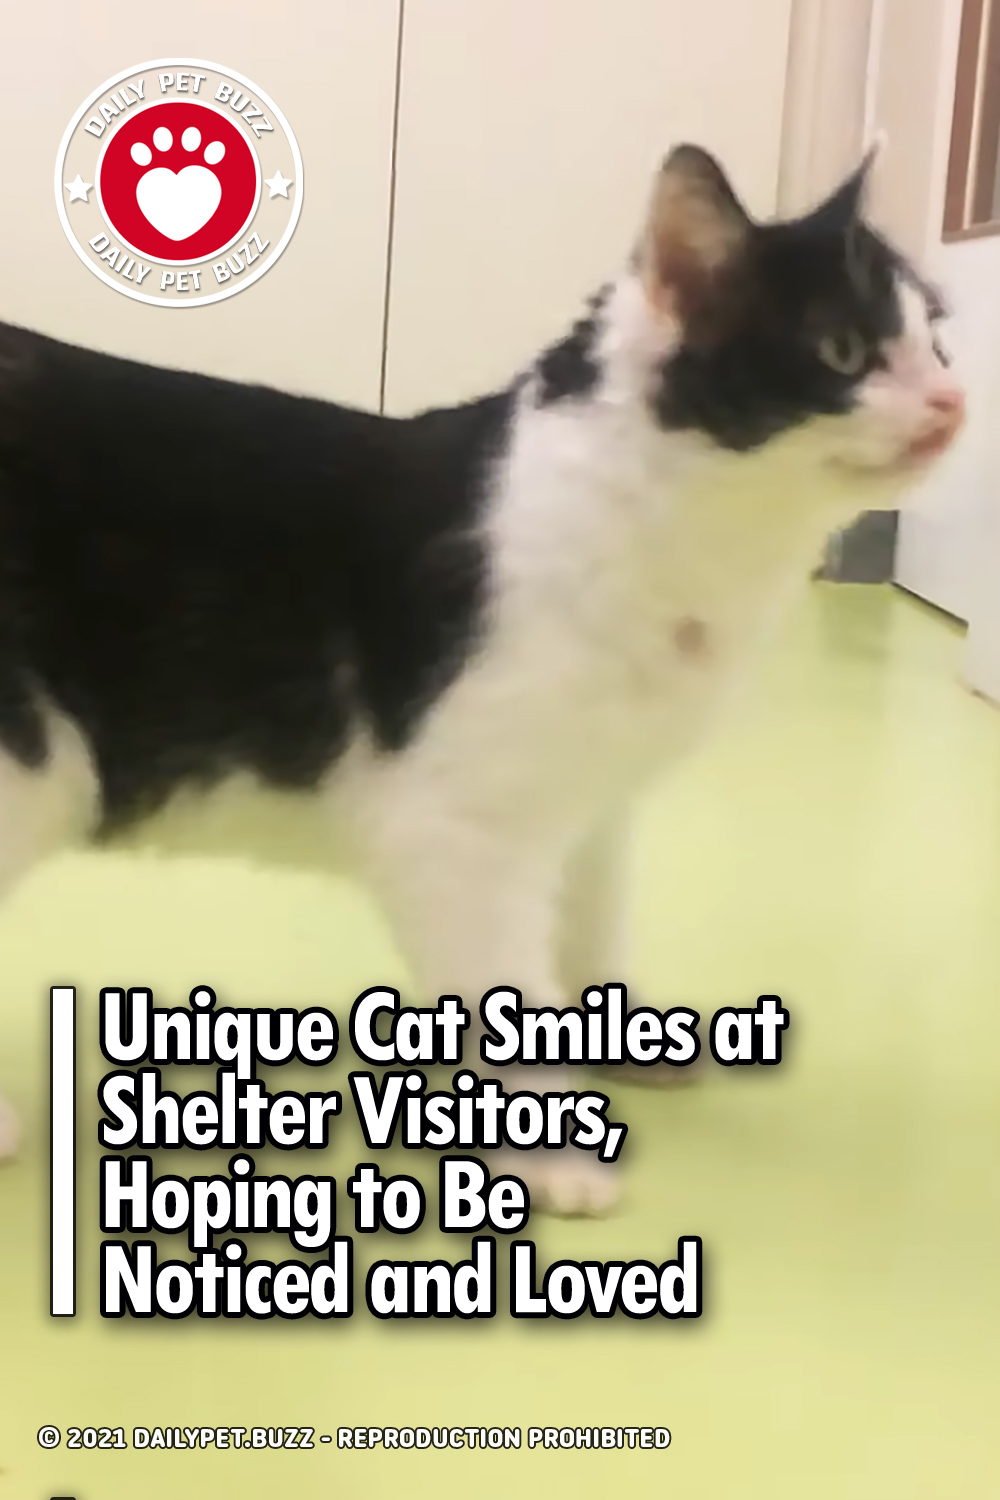 Unique Cat Smiles at Shelter Visitors, Hoping to Be Noticed and Loved